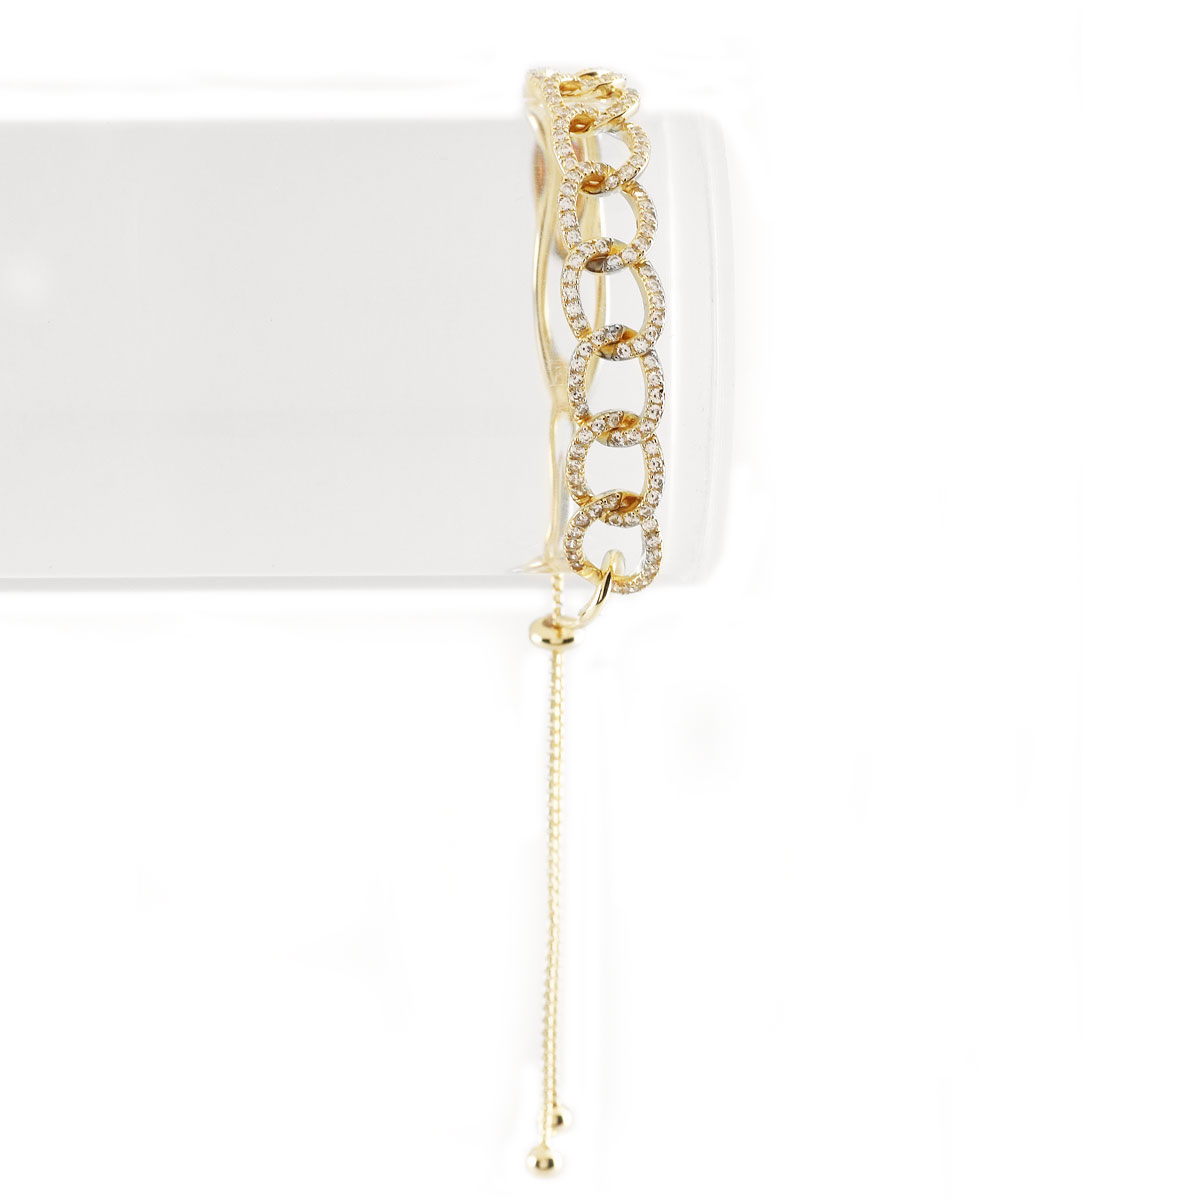 Cashs Ireland, Gold and Pave Link Pull Up Bracelet